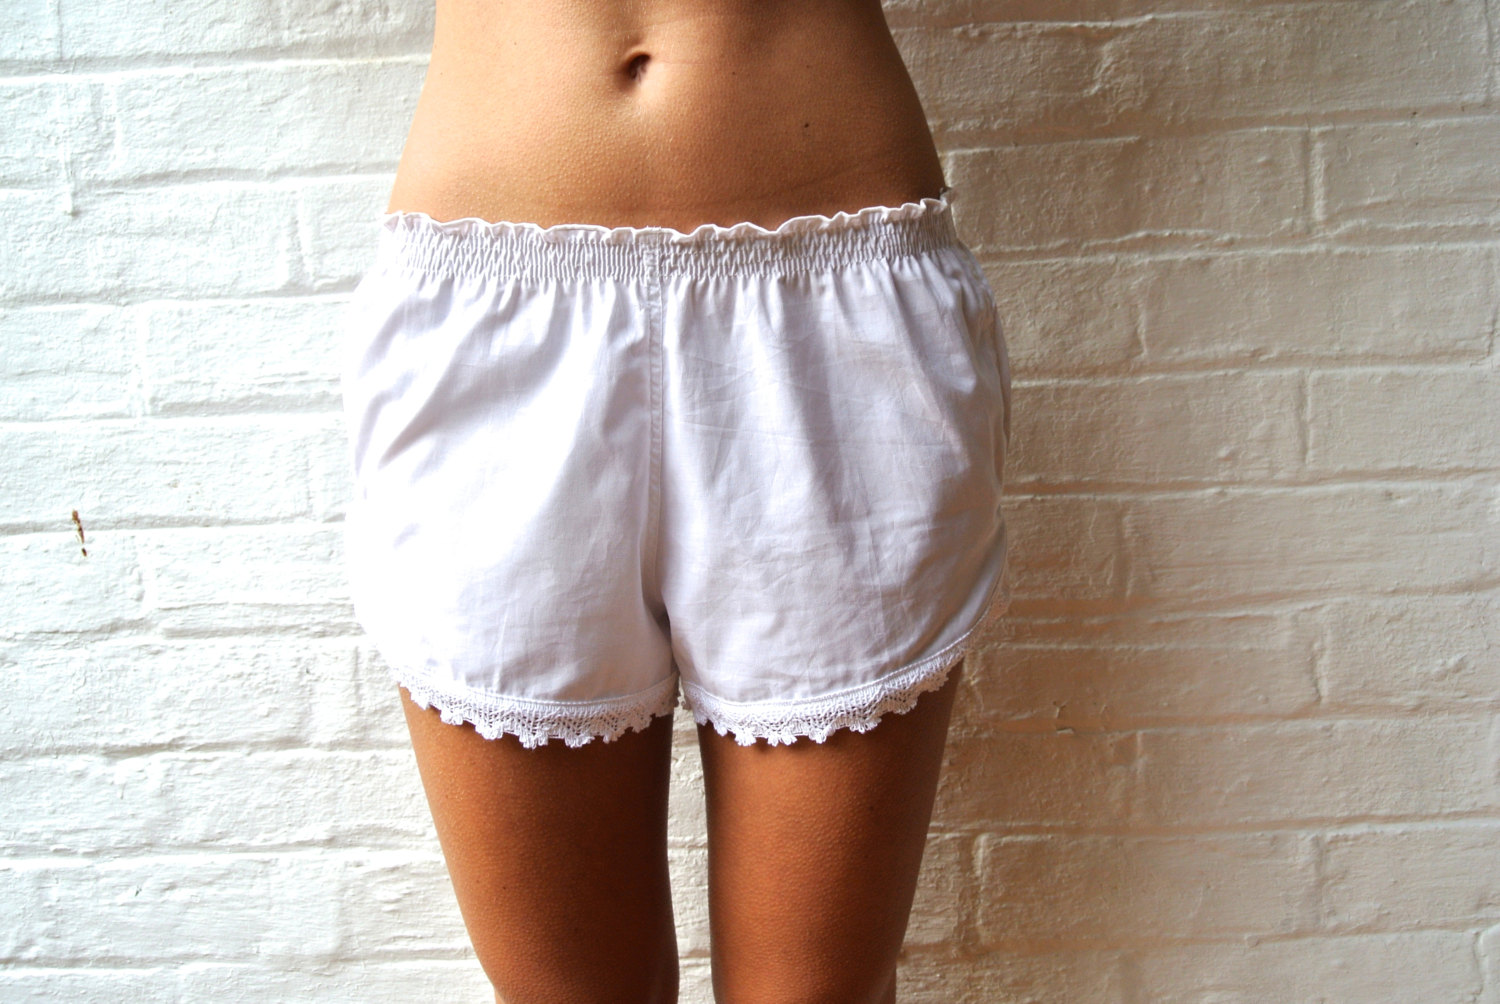 Floater Pajama Shorts - White Cotton Lace